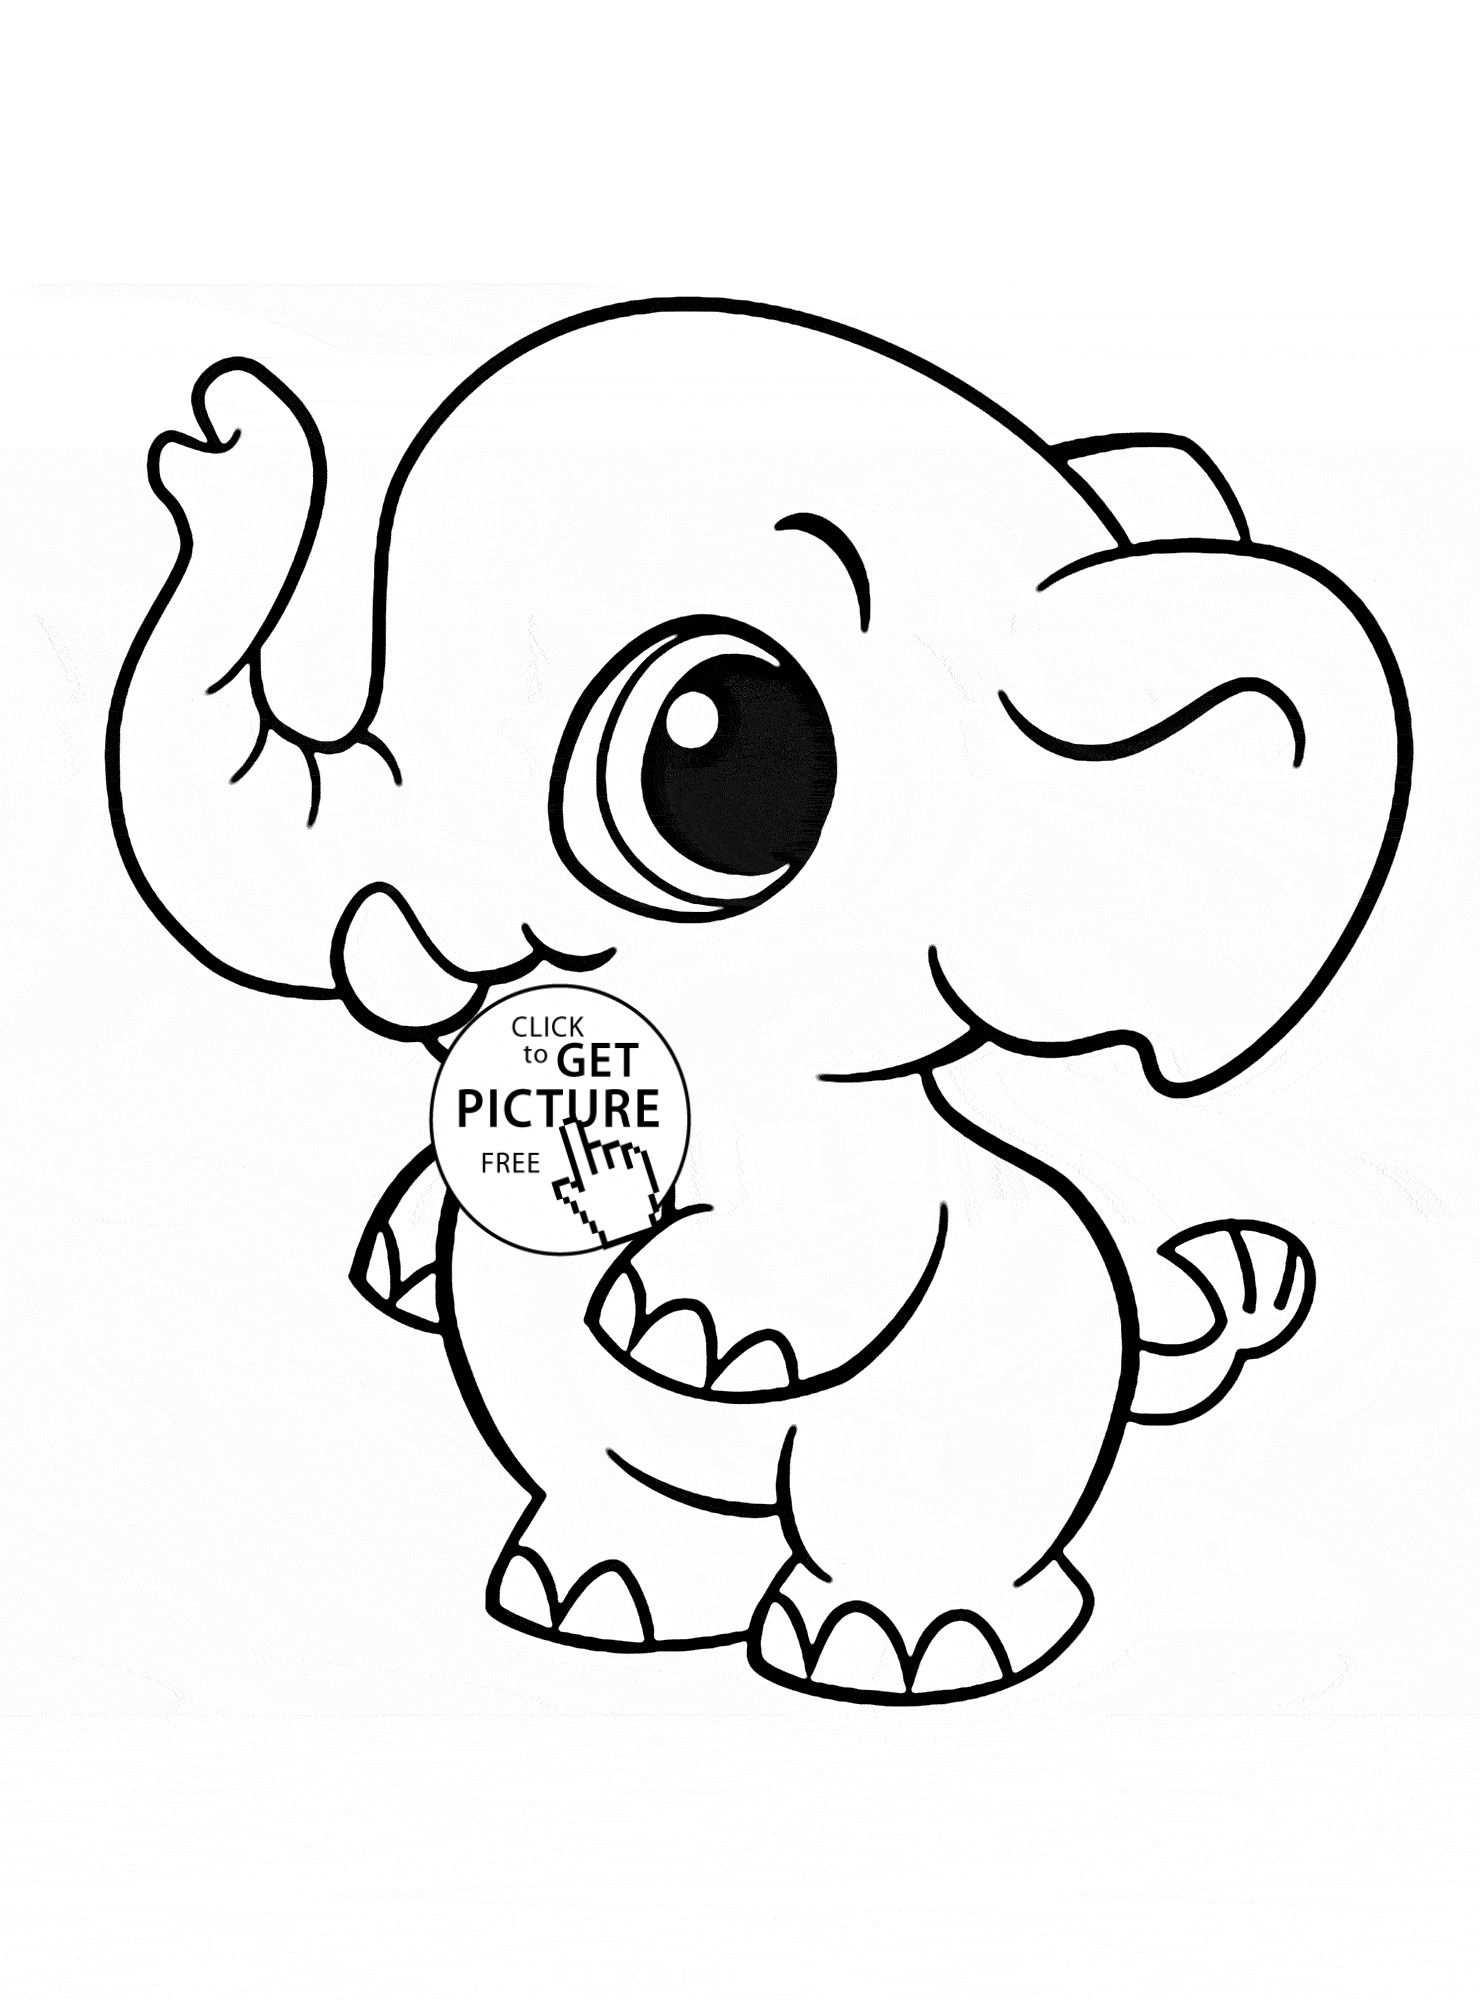 Cute Animals With Big Eyes Coloring Pages Elephant Coloring Page